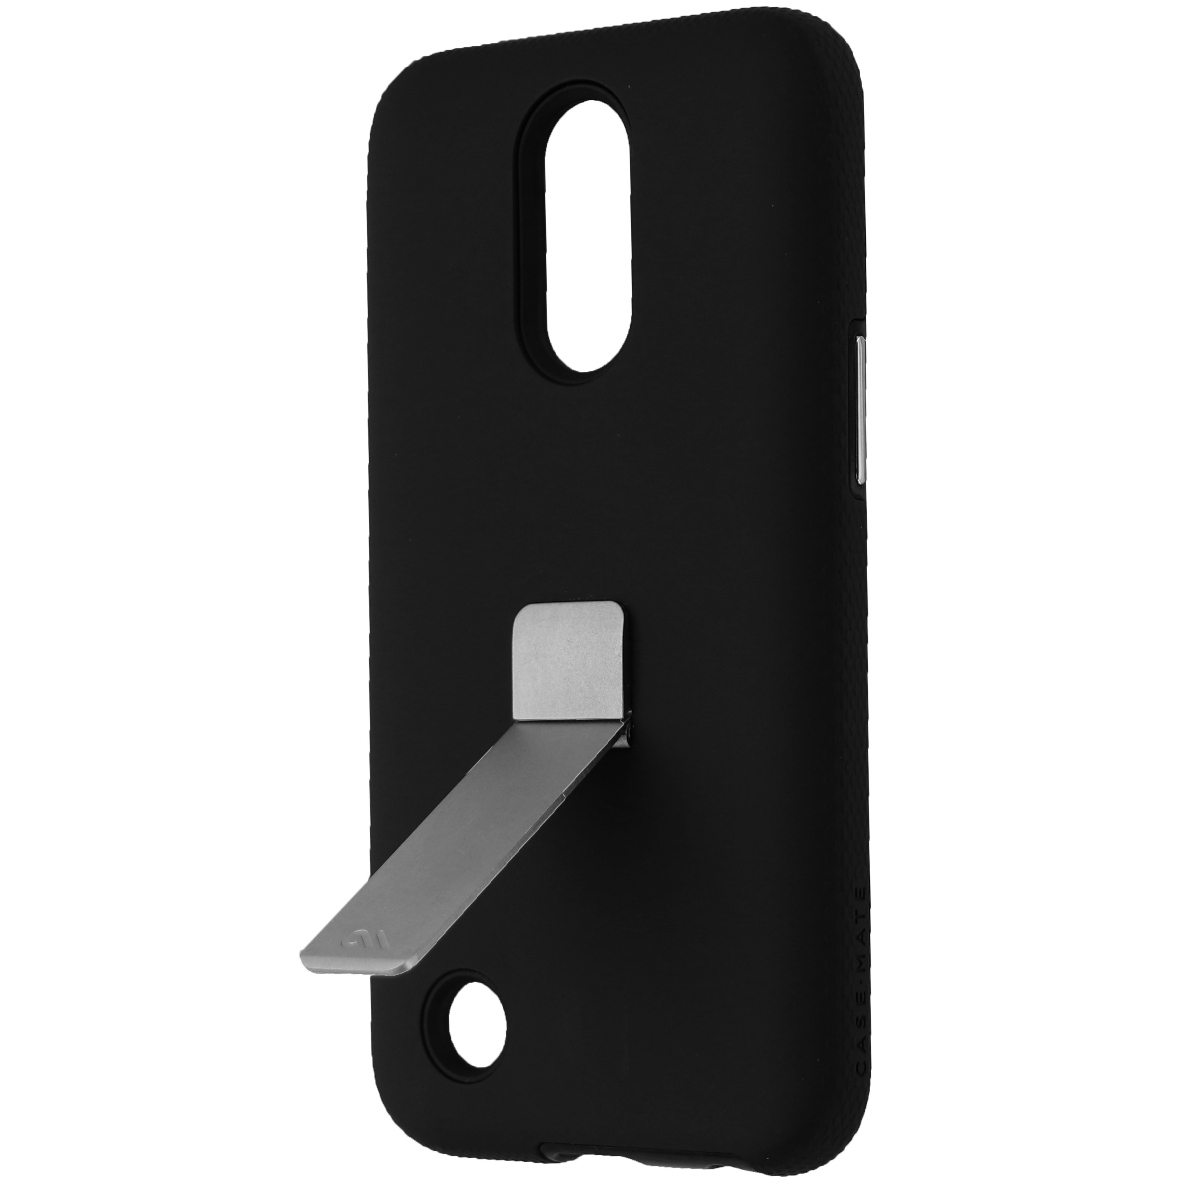 Case Mate Toughstand Series Protective Case Cover Stand for LG K20 Plus - Black